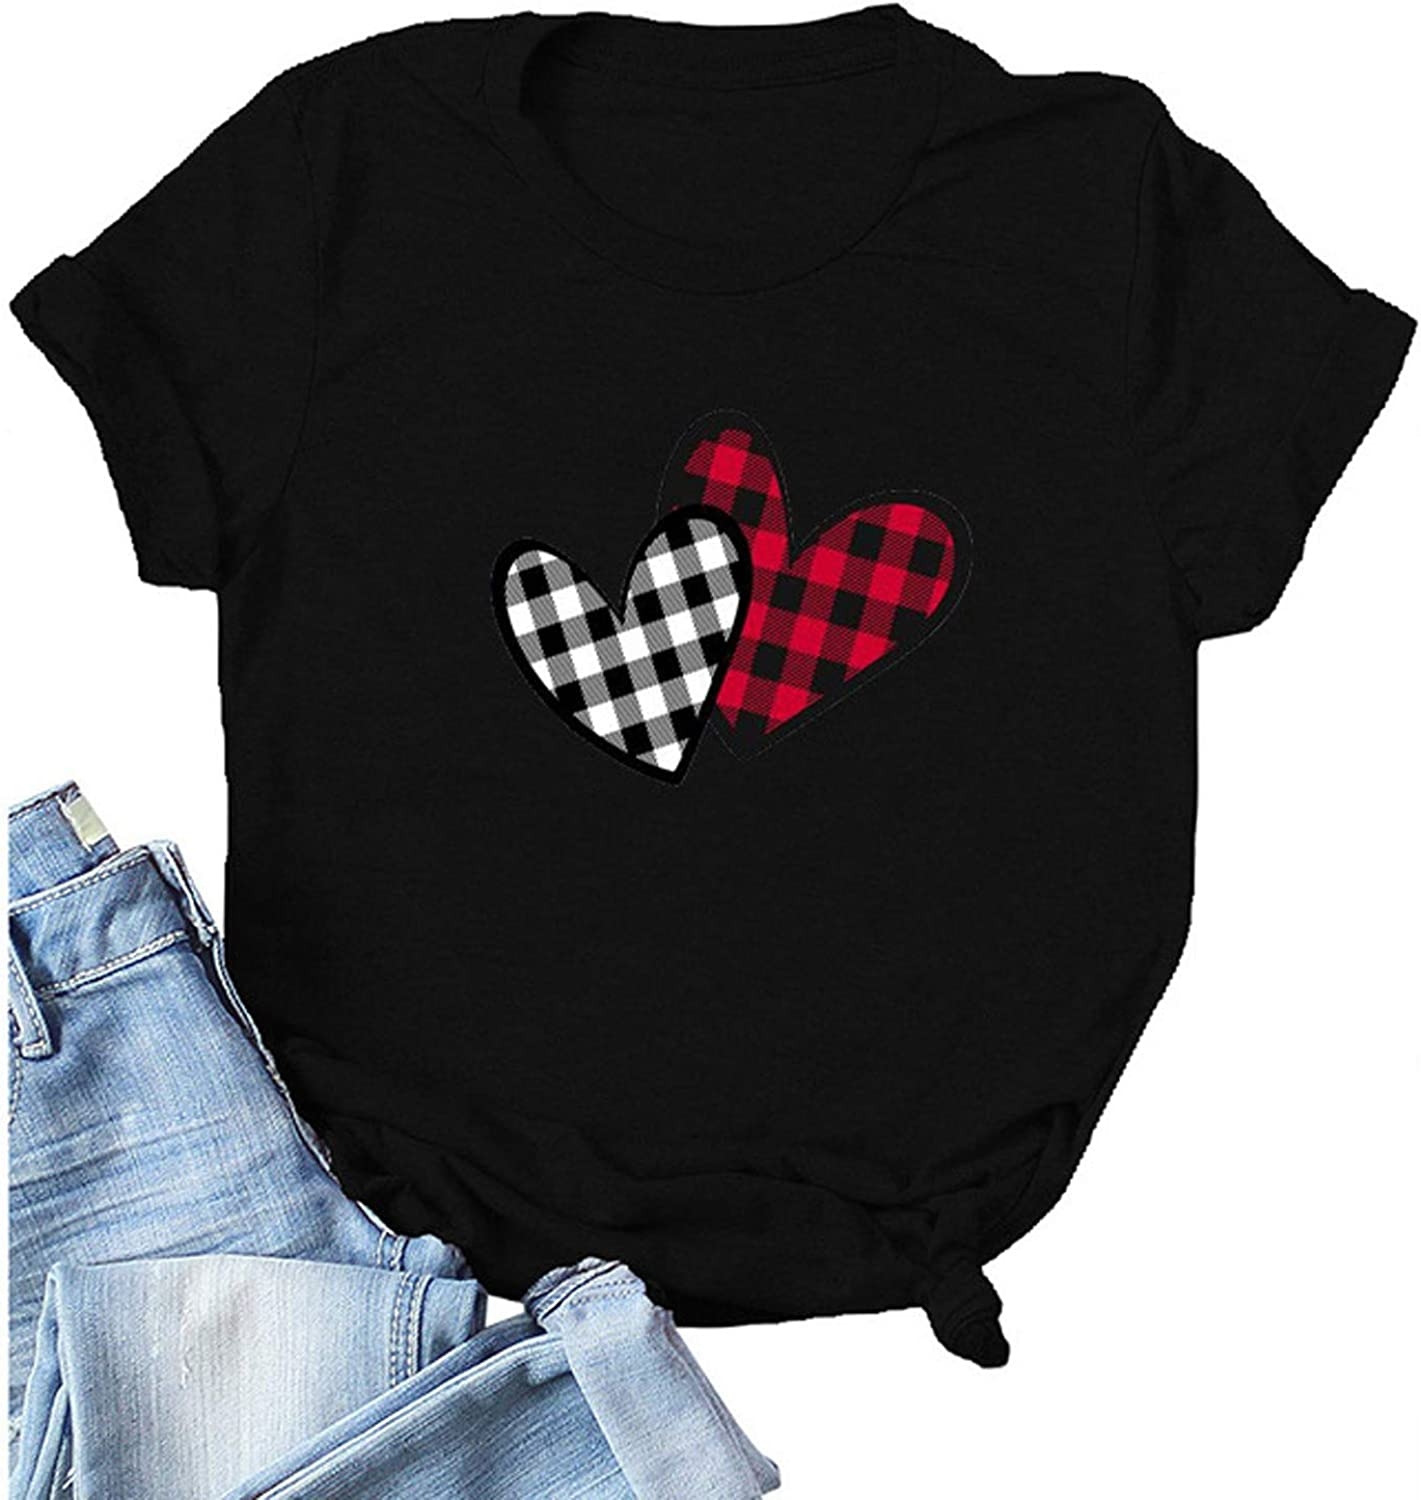 FABIURT T Shirts for Women, Womens Valentine's Day Plaid Heart Printed T-Shirt Short Sleeve Casual Loose Blouse Tee Tops